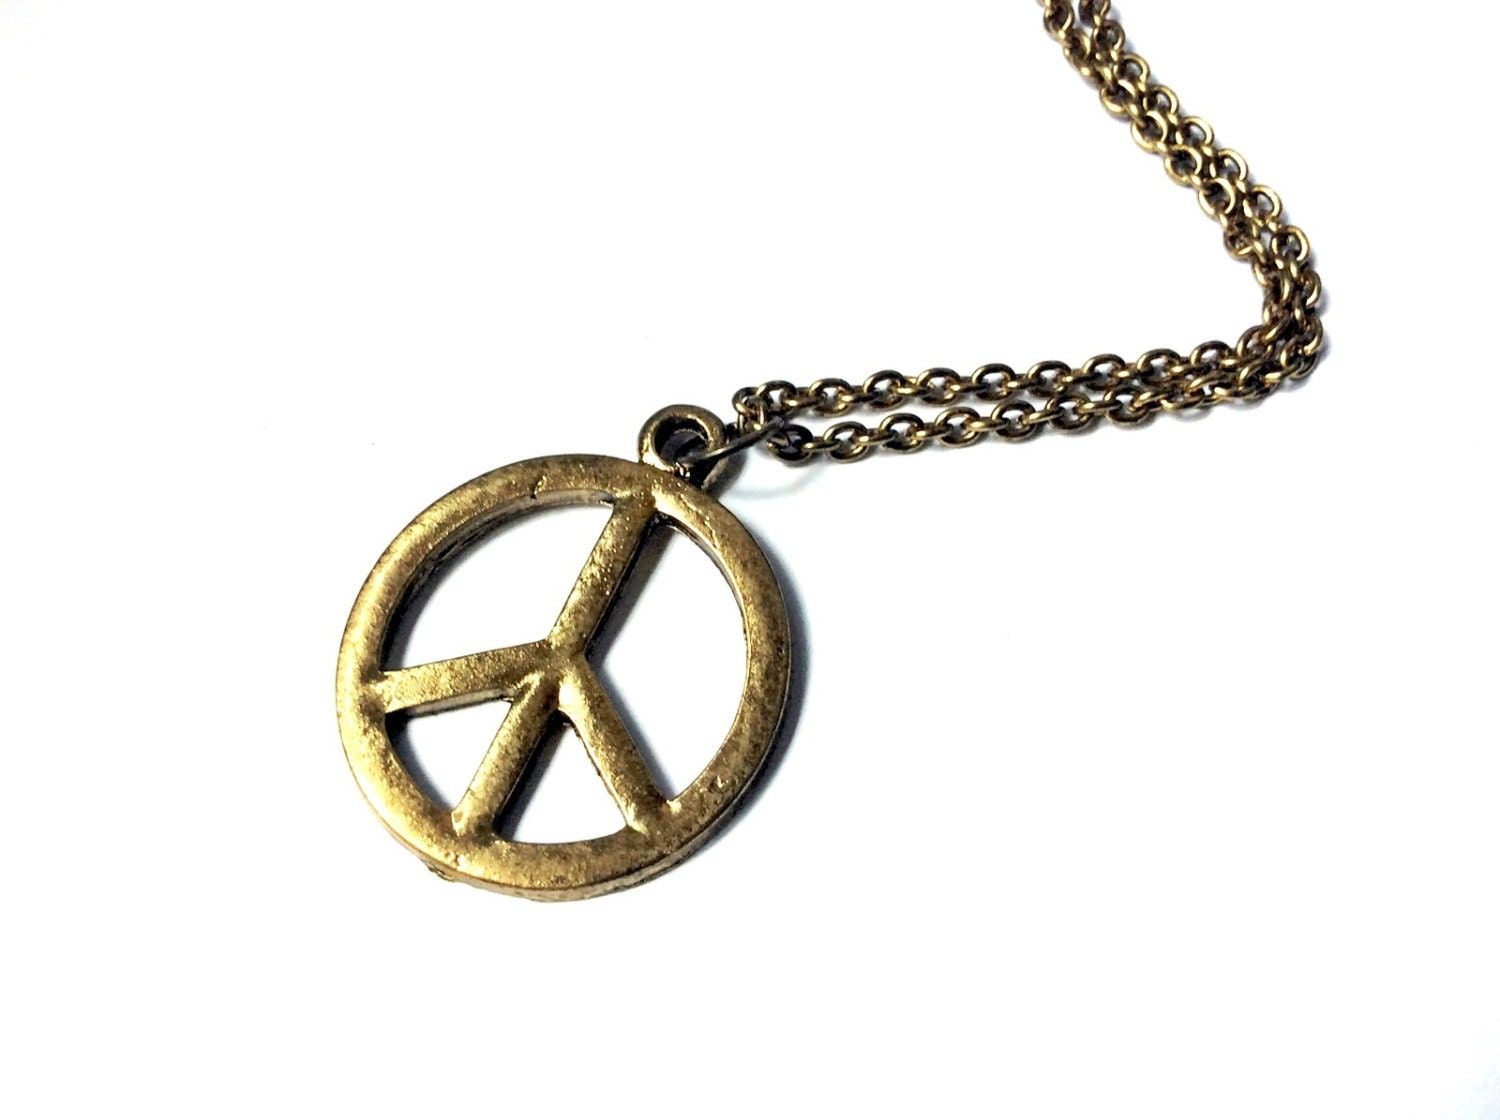 Peace Sign Necklace: large peace sign pendant